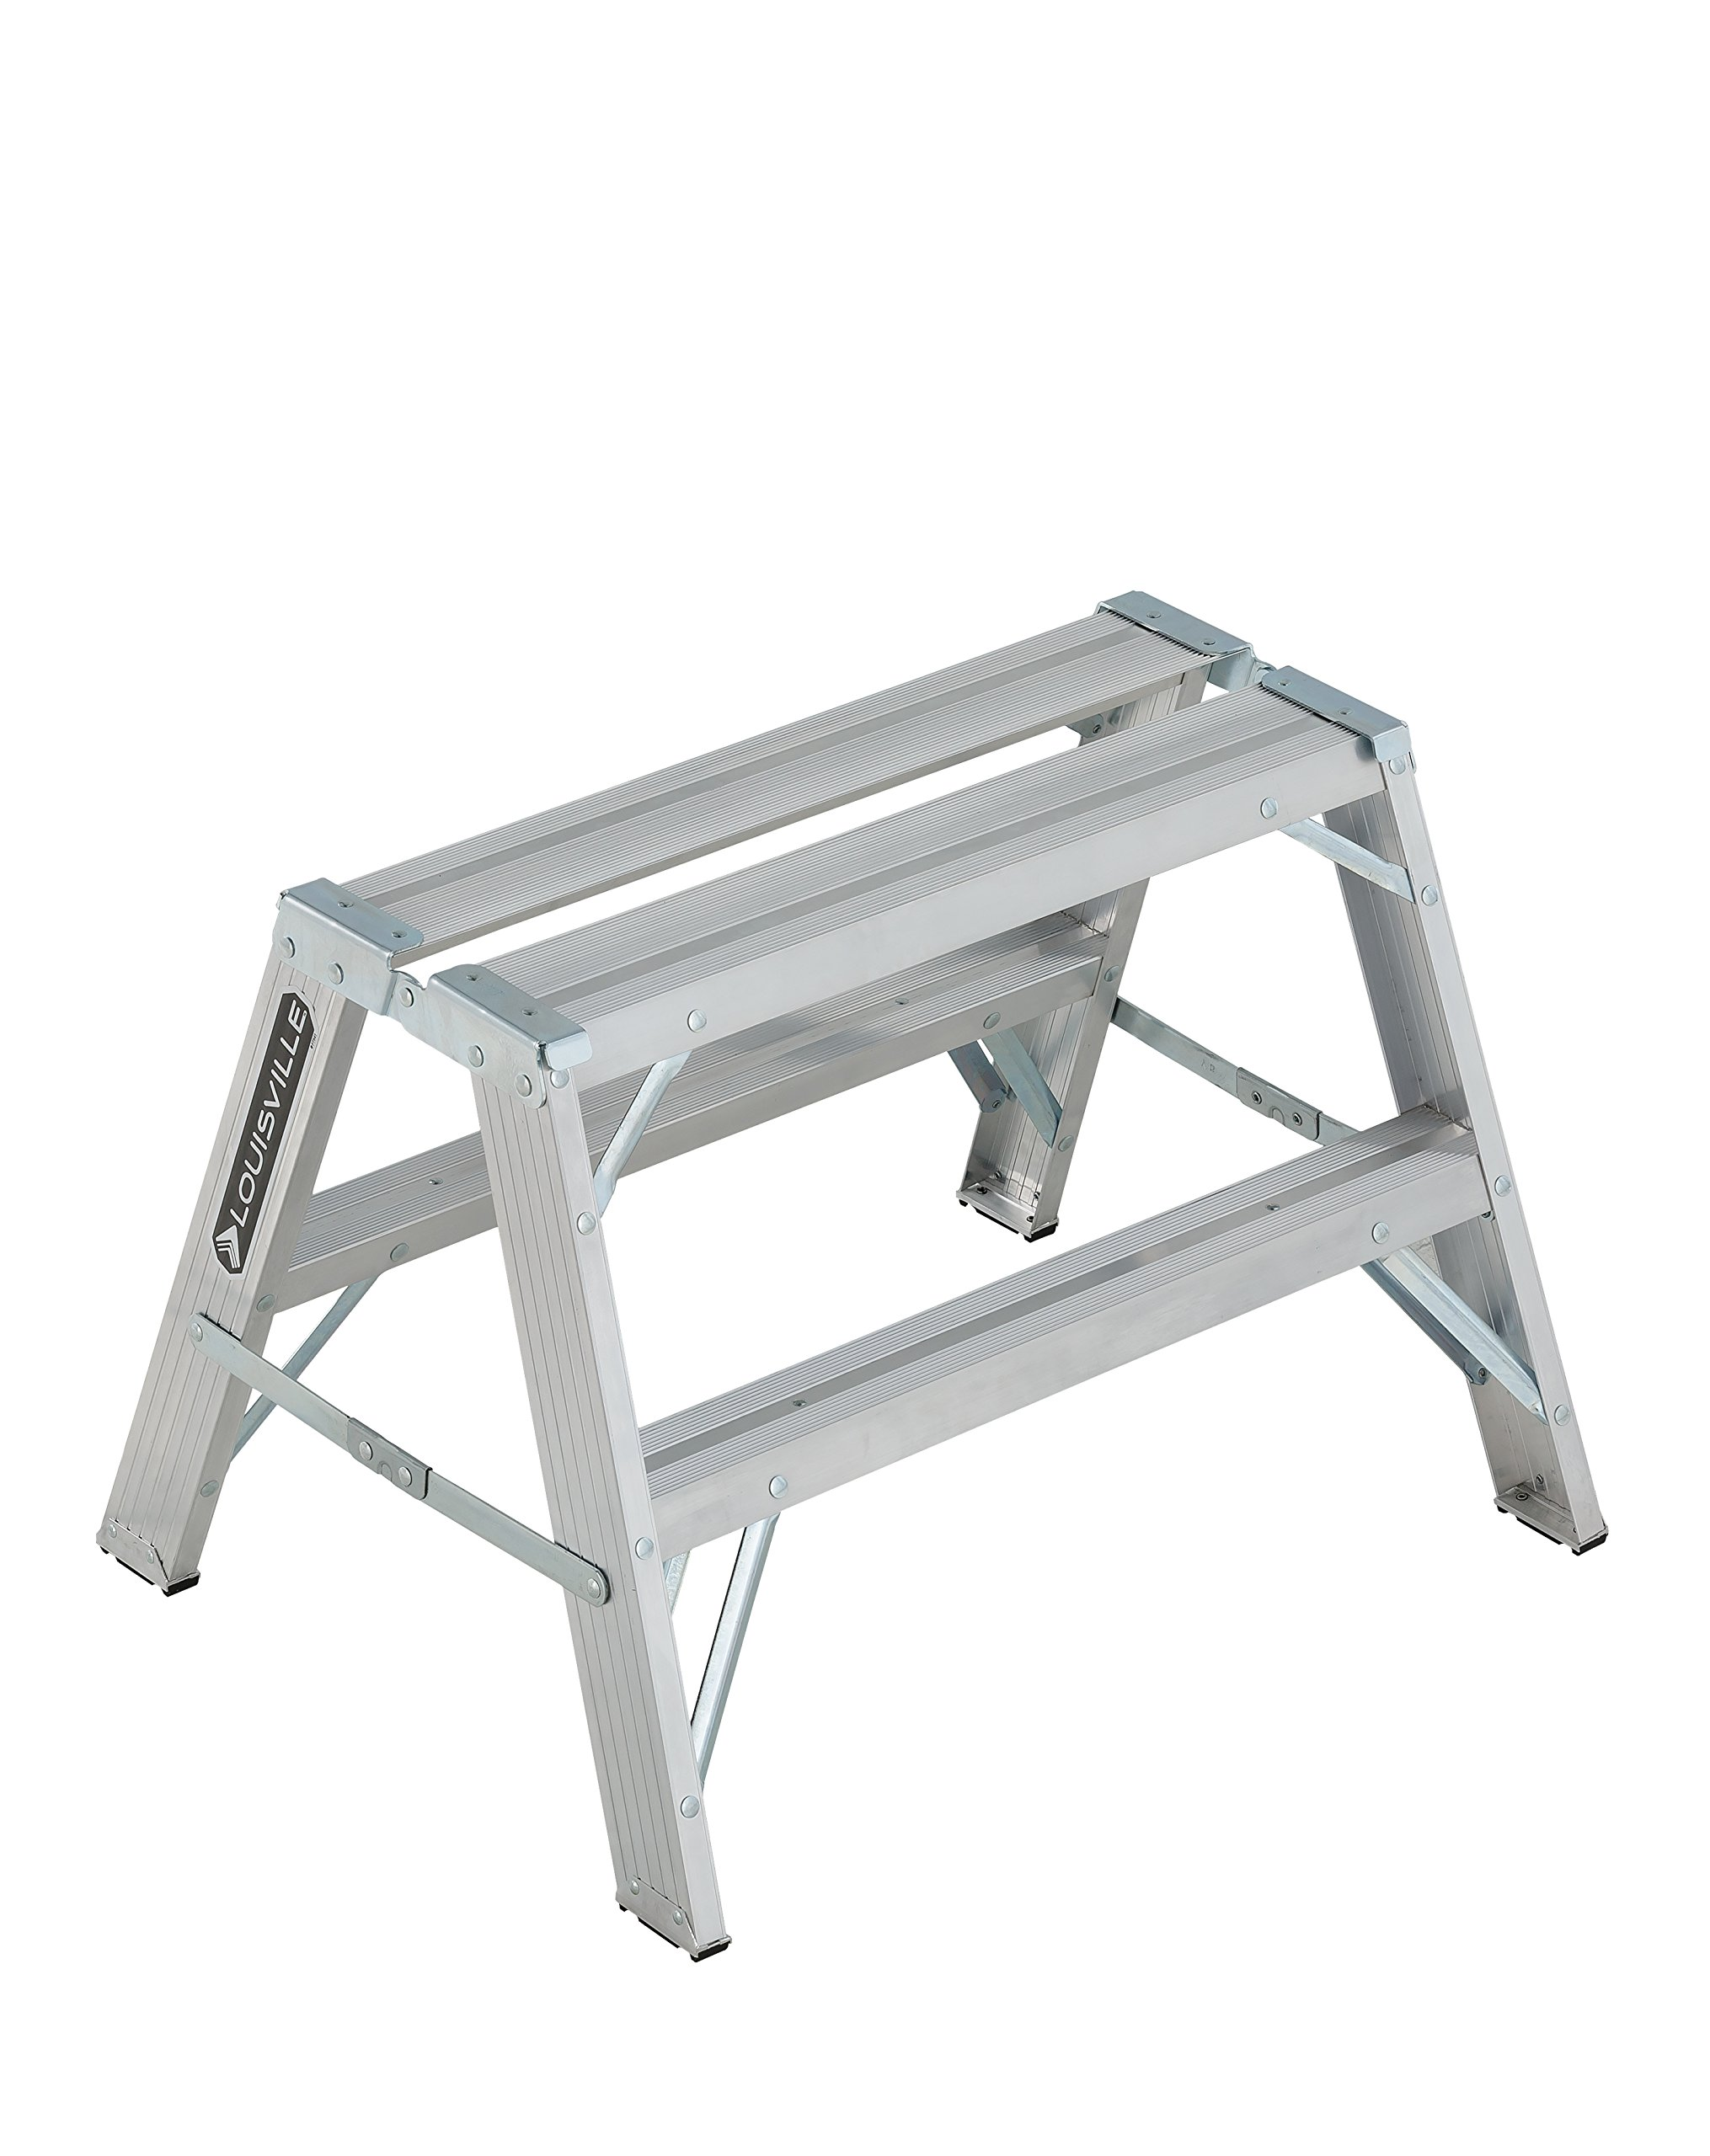 Louisville Ladder 2-Foot Aluminum Sawhorse, L-2032-02